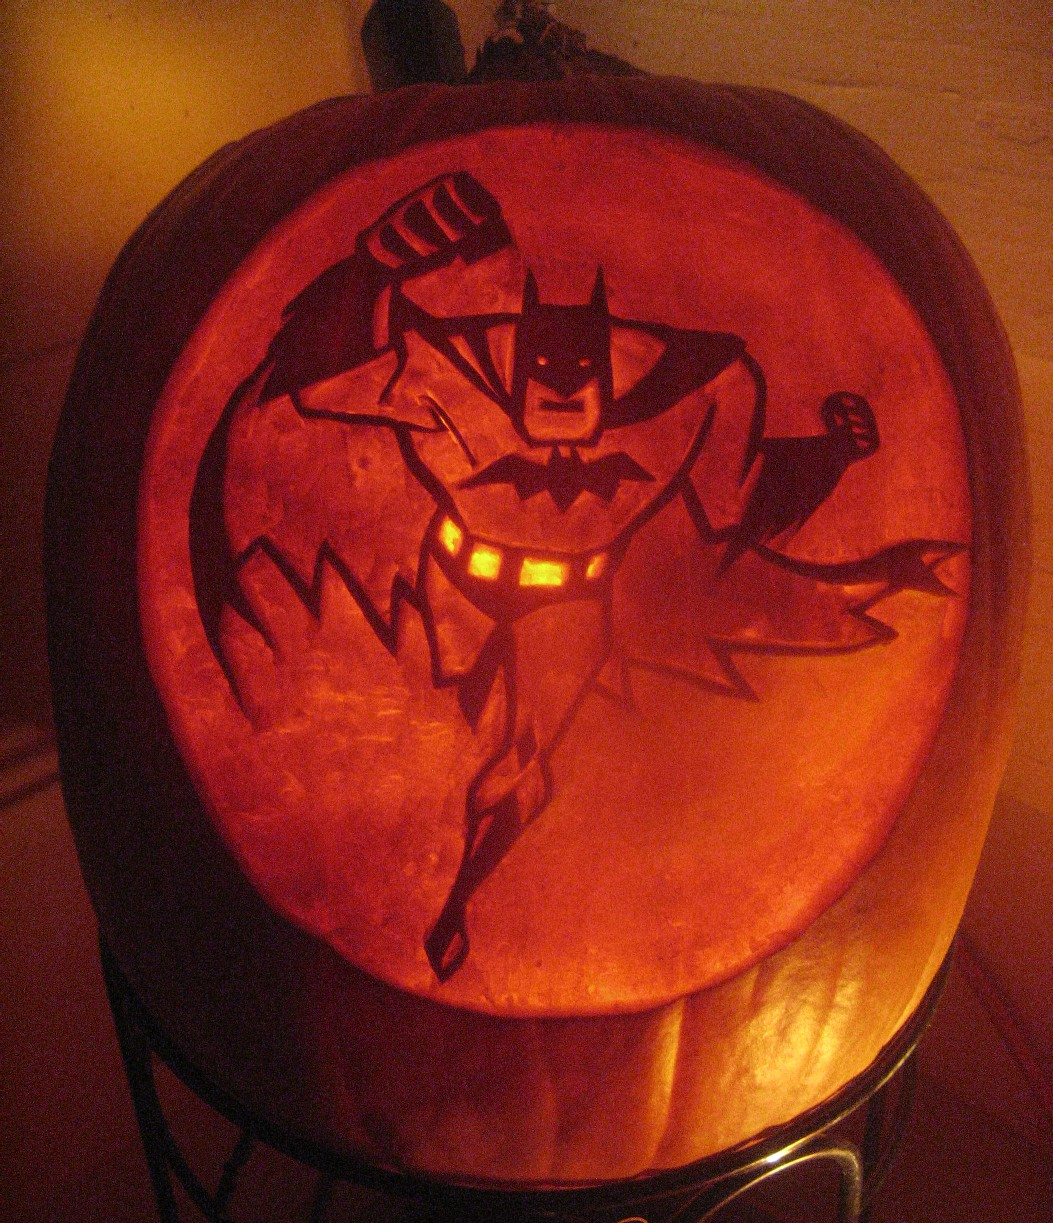 Drawn pumpkin halloween decoration Incredible Decorating Magnificent Fantastic Picture